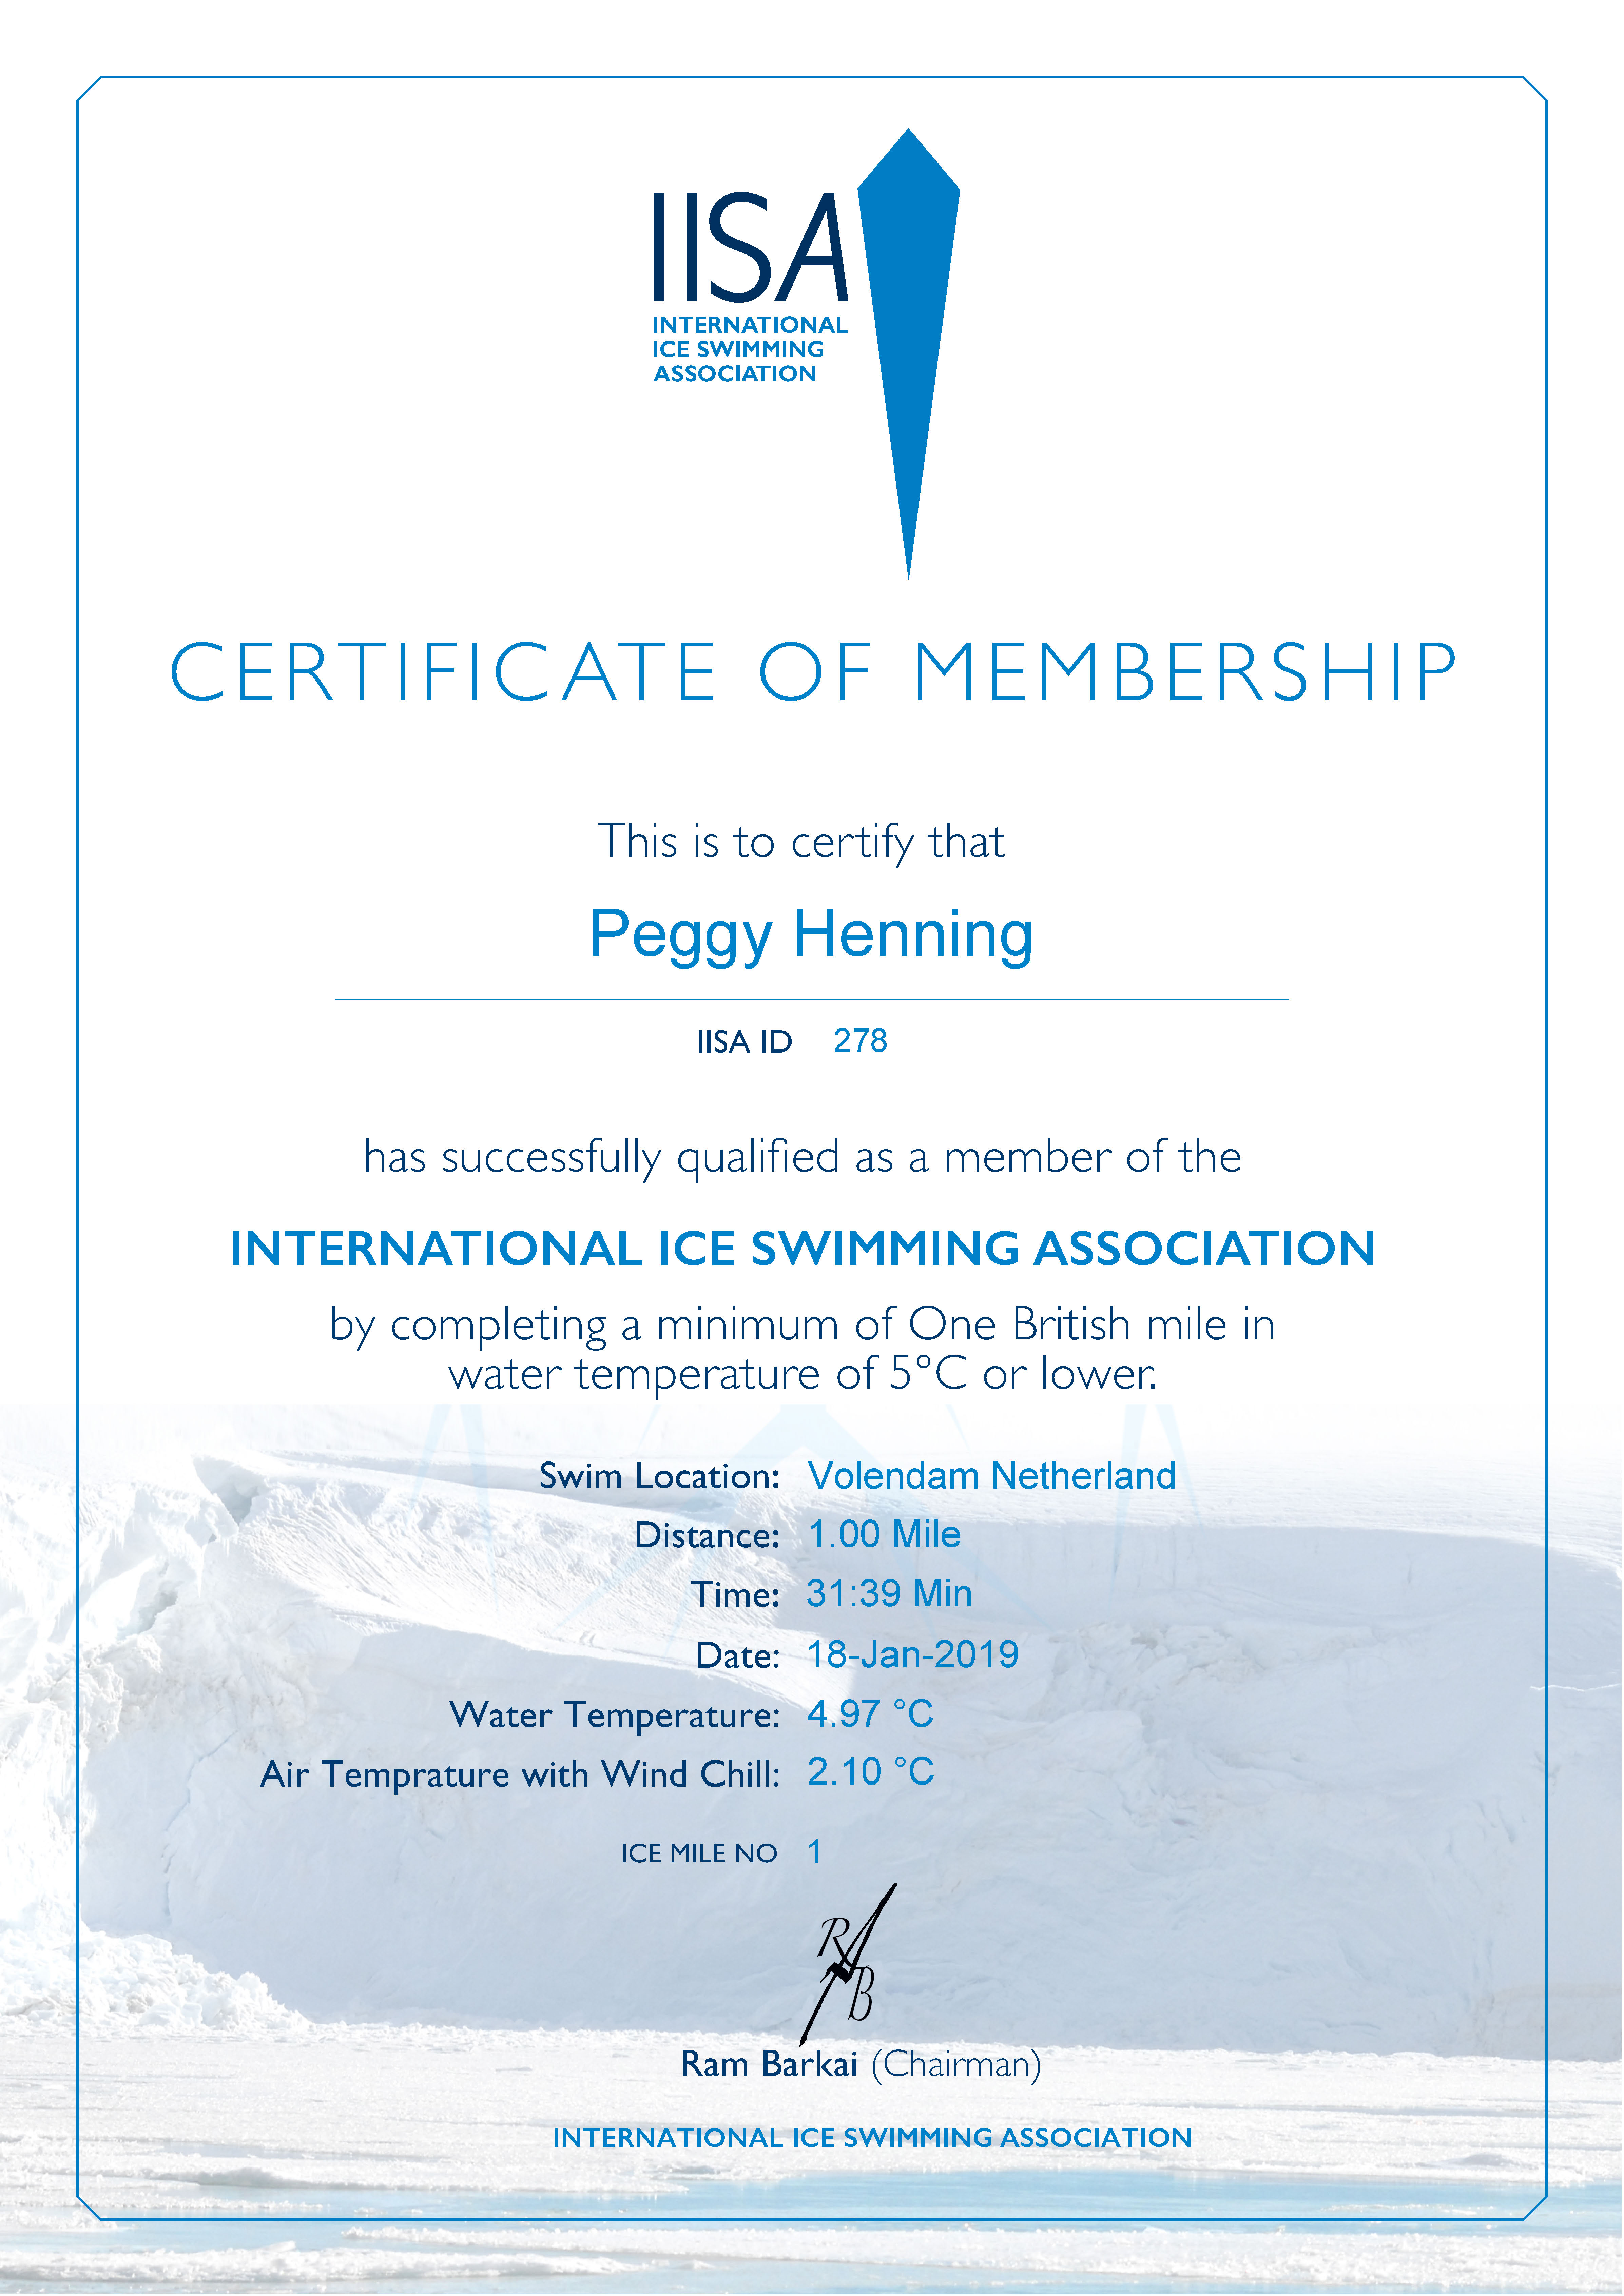 Ice Mile Certificate - Peggy Henning